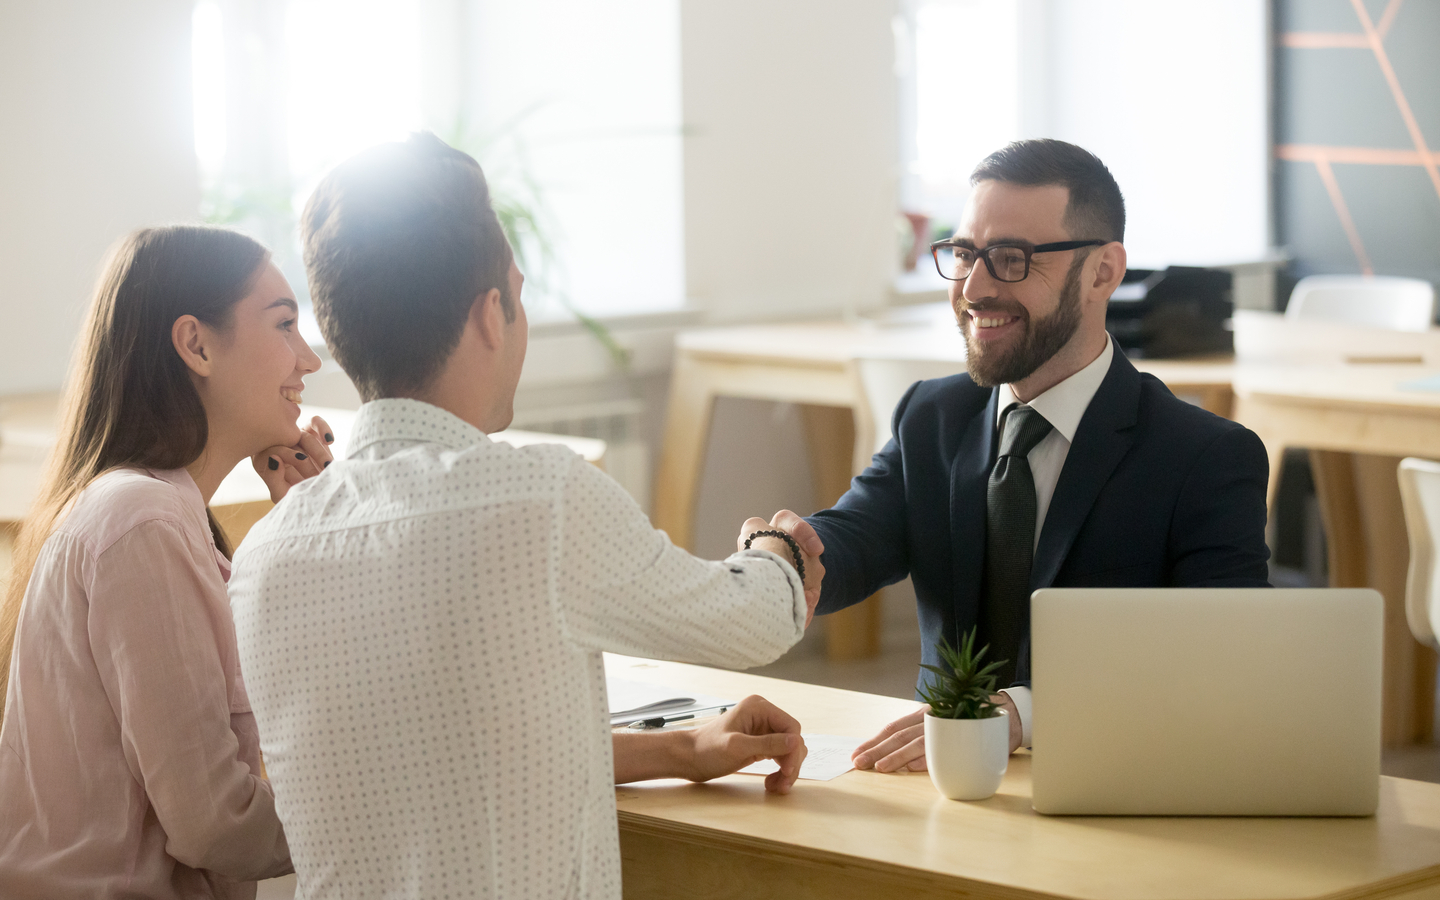 Real estate agent meets with sellers